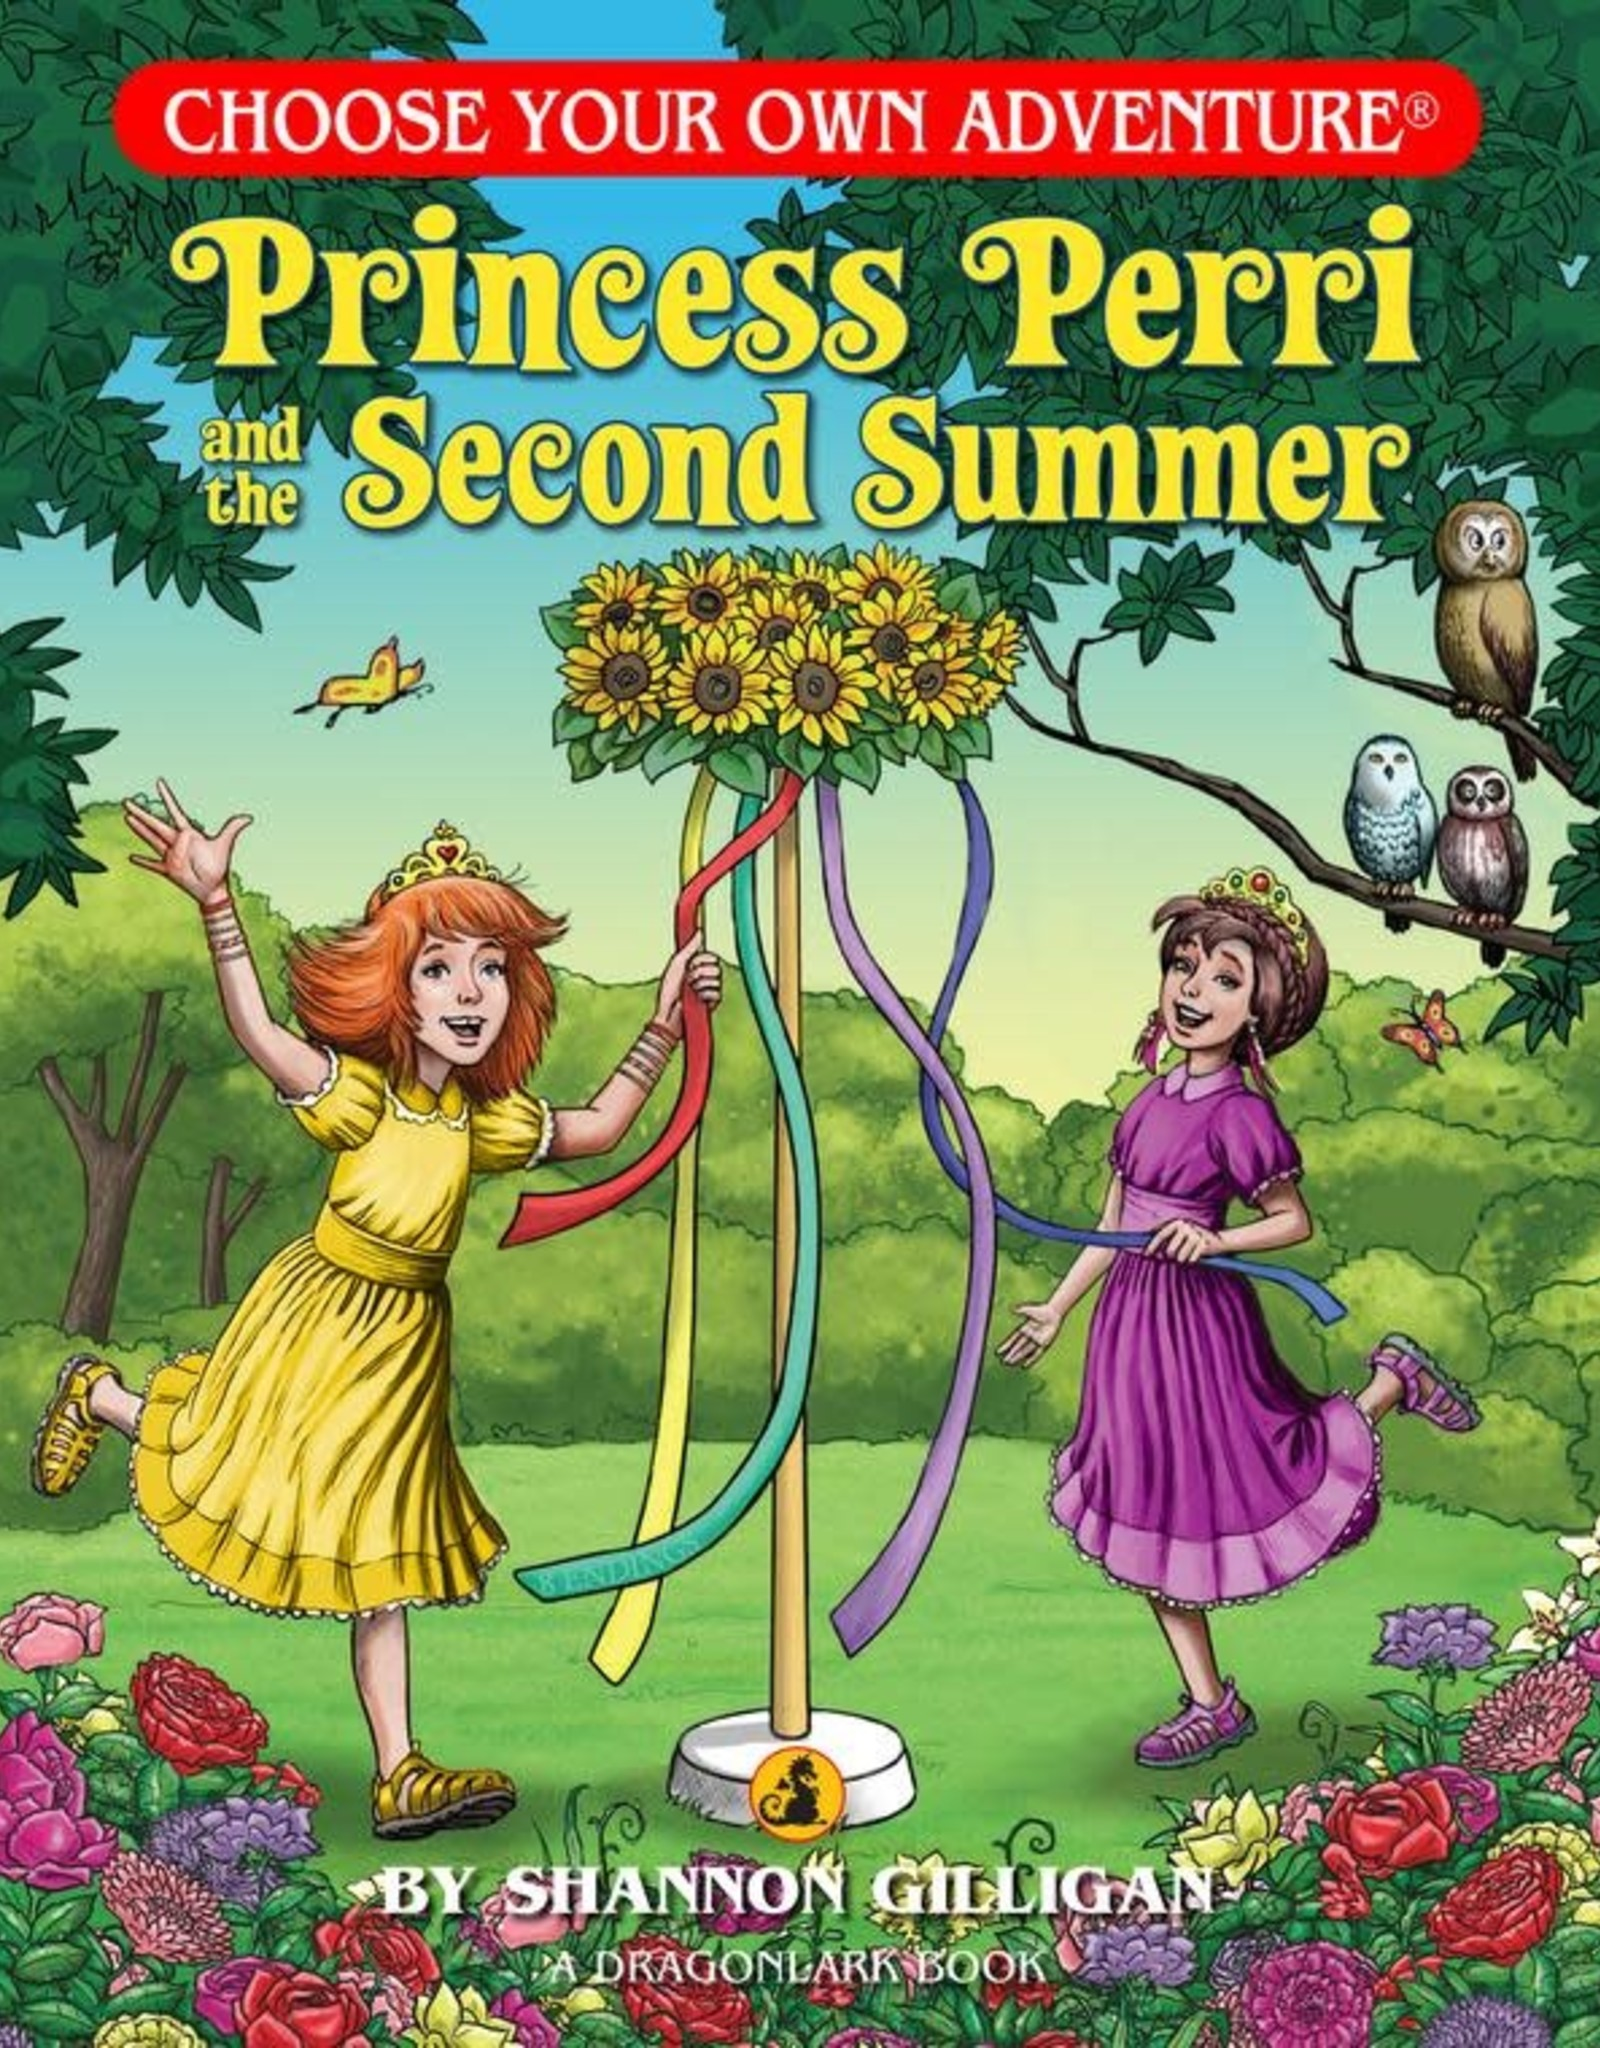 Choose Your Own Adventure CYOA Princess Perri and the Second Summer